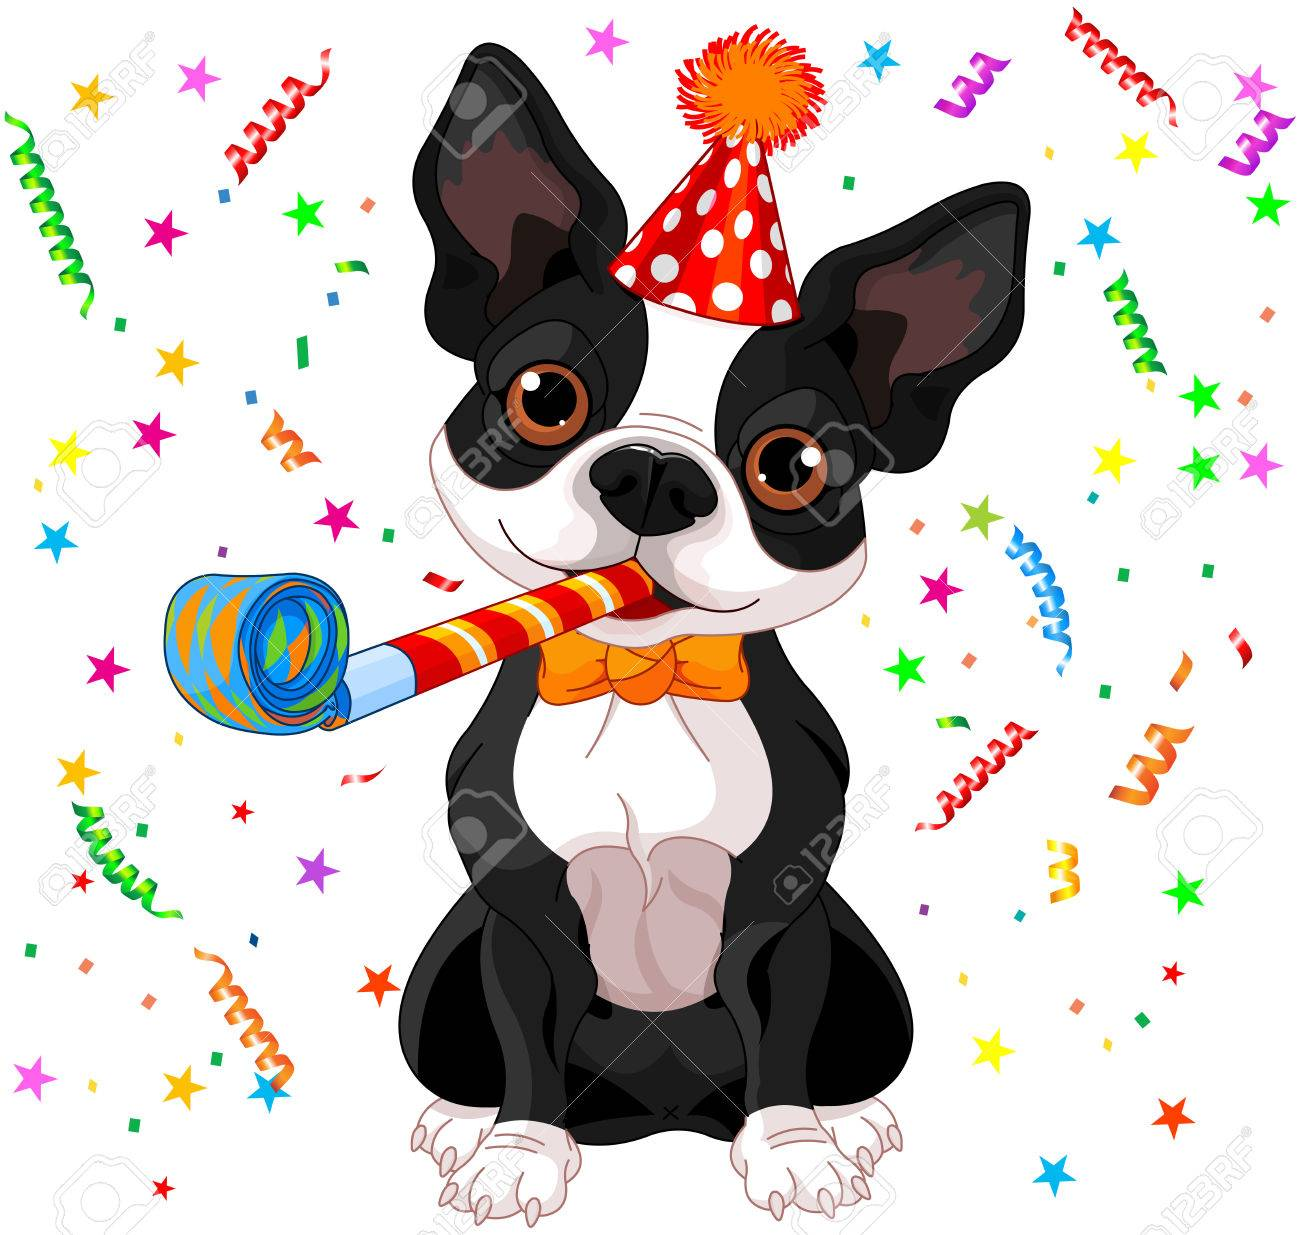 Comment empêcher son chien de garder la maison? - Page 4 35588778-illustration-of-cute-boston-terrier-celebrating